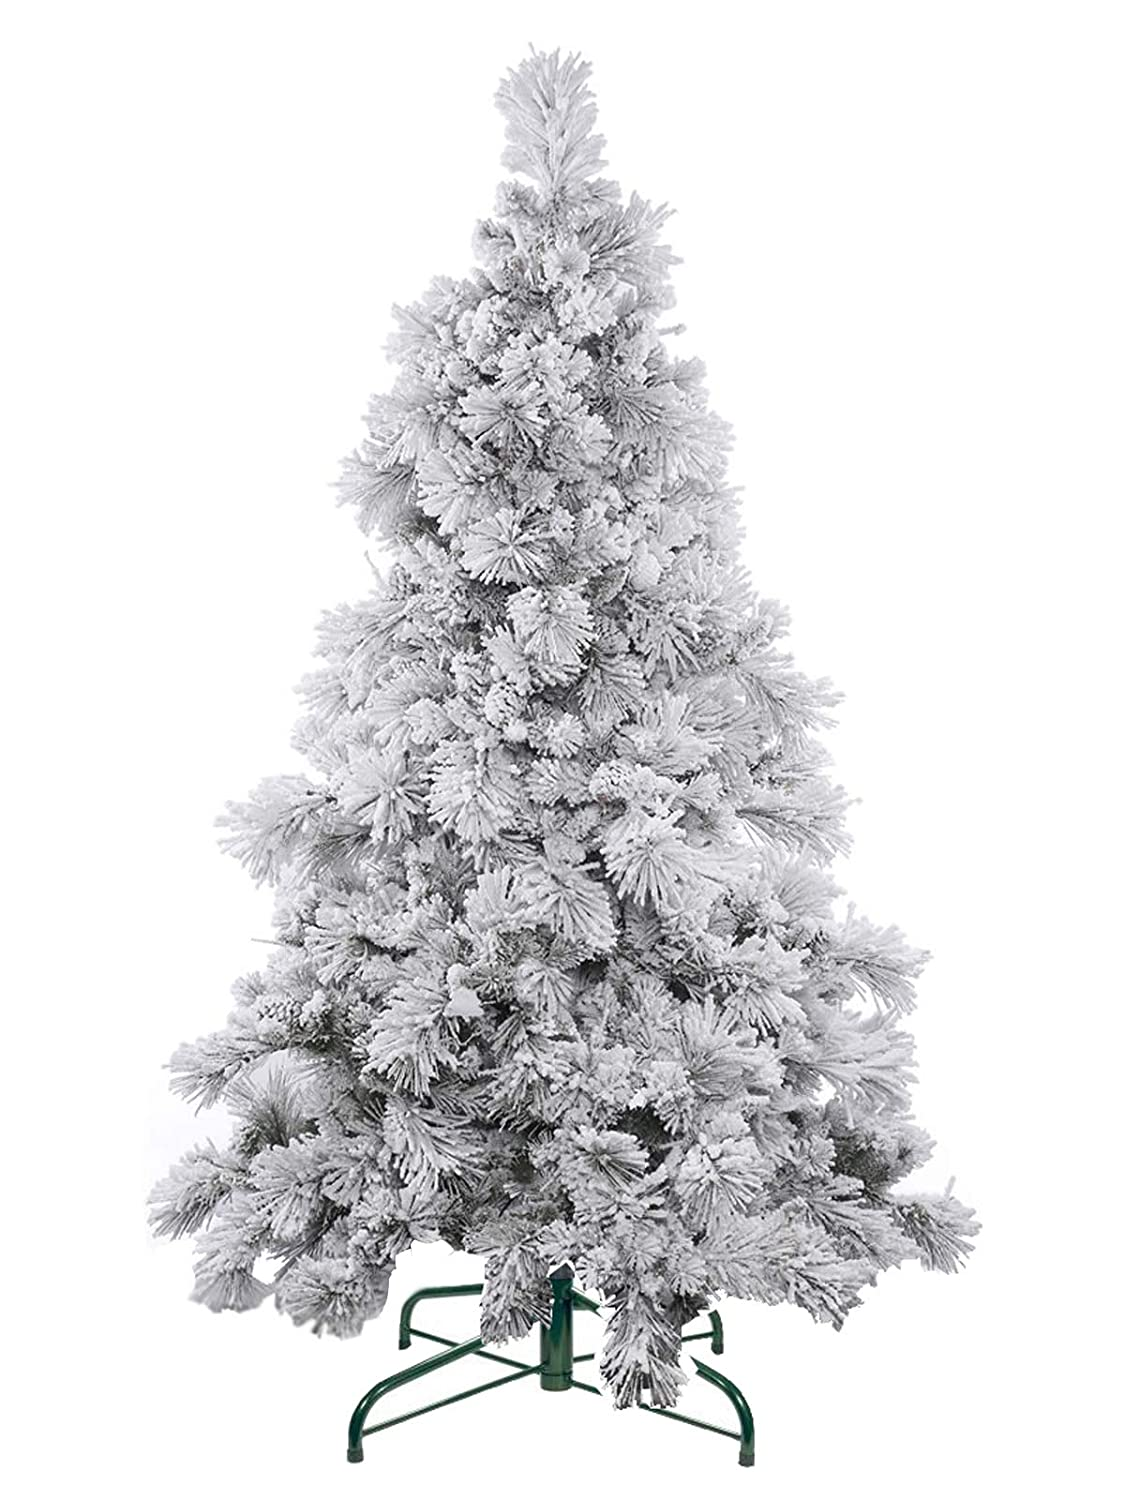 9b6d1726162 Evergreen Holiday Décor 6FT Flocked Artificial Christmas Tree - Unlit. 6   Flocked Snow Tree Metal Stand